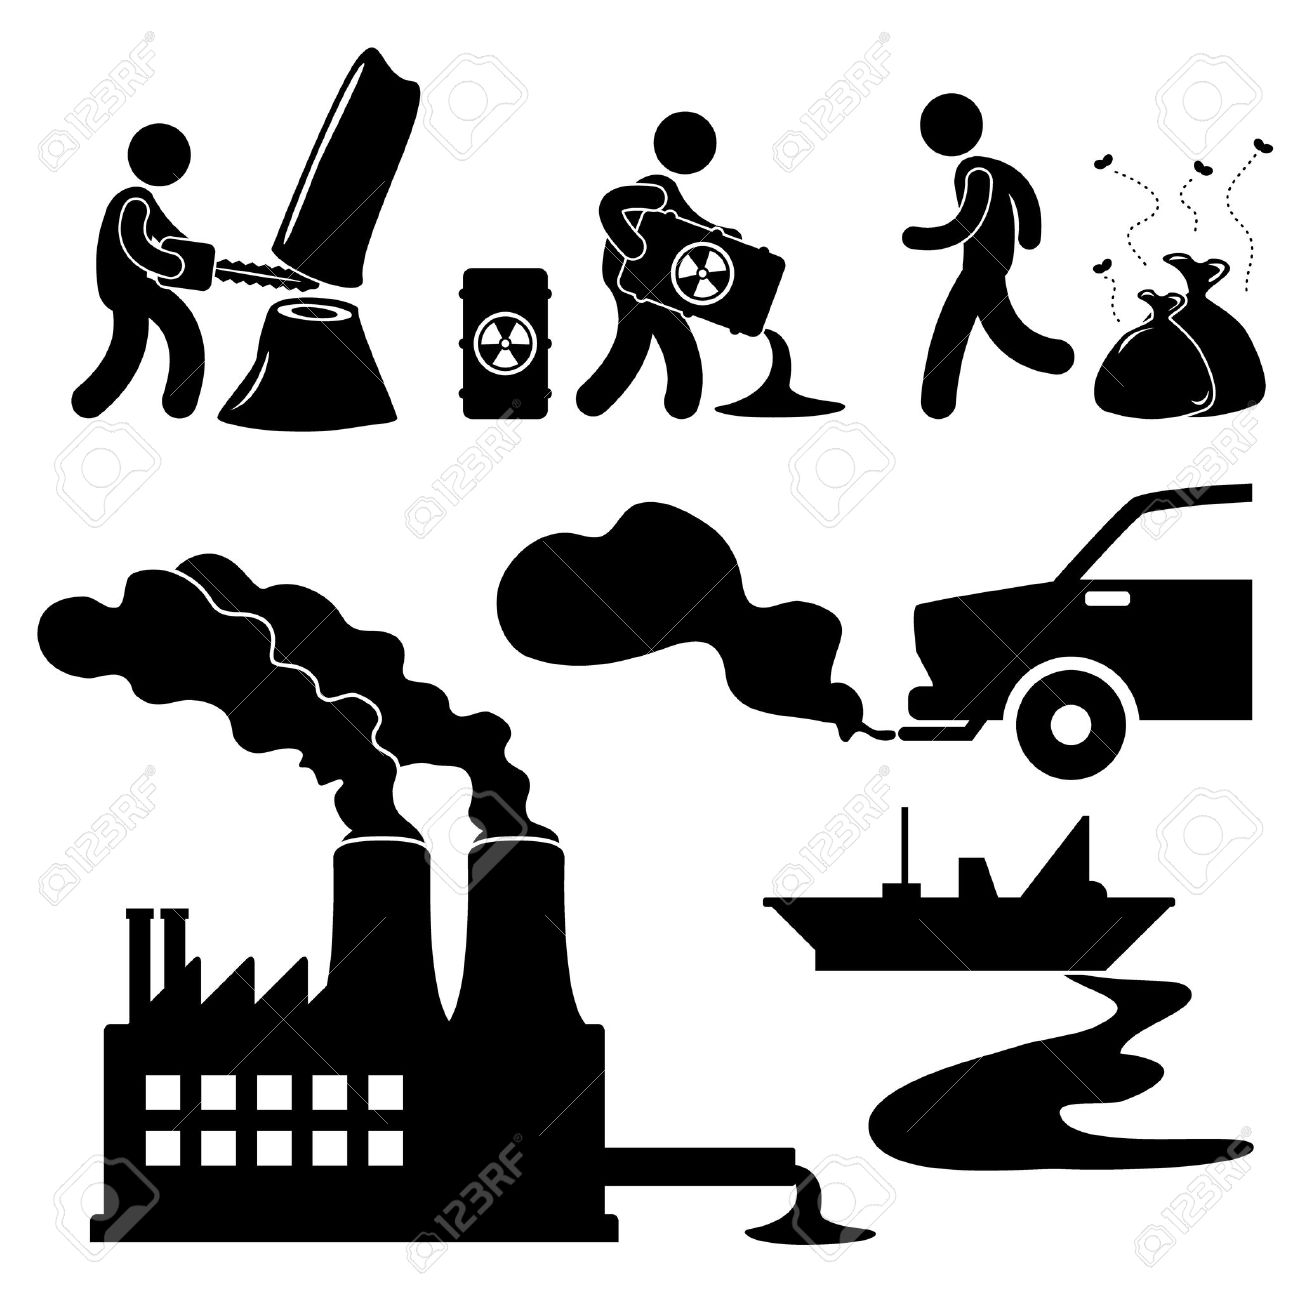 Global Warming Illegal Pollution Destroying Green Environment Concept Icon Symbol Sign Pictogram Stock Vector - 11965730